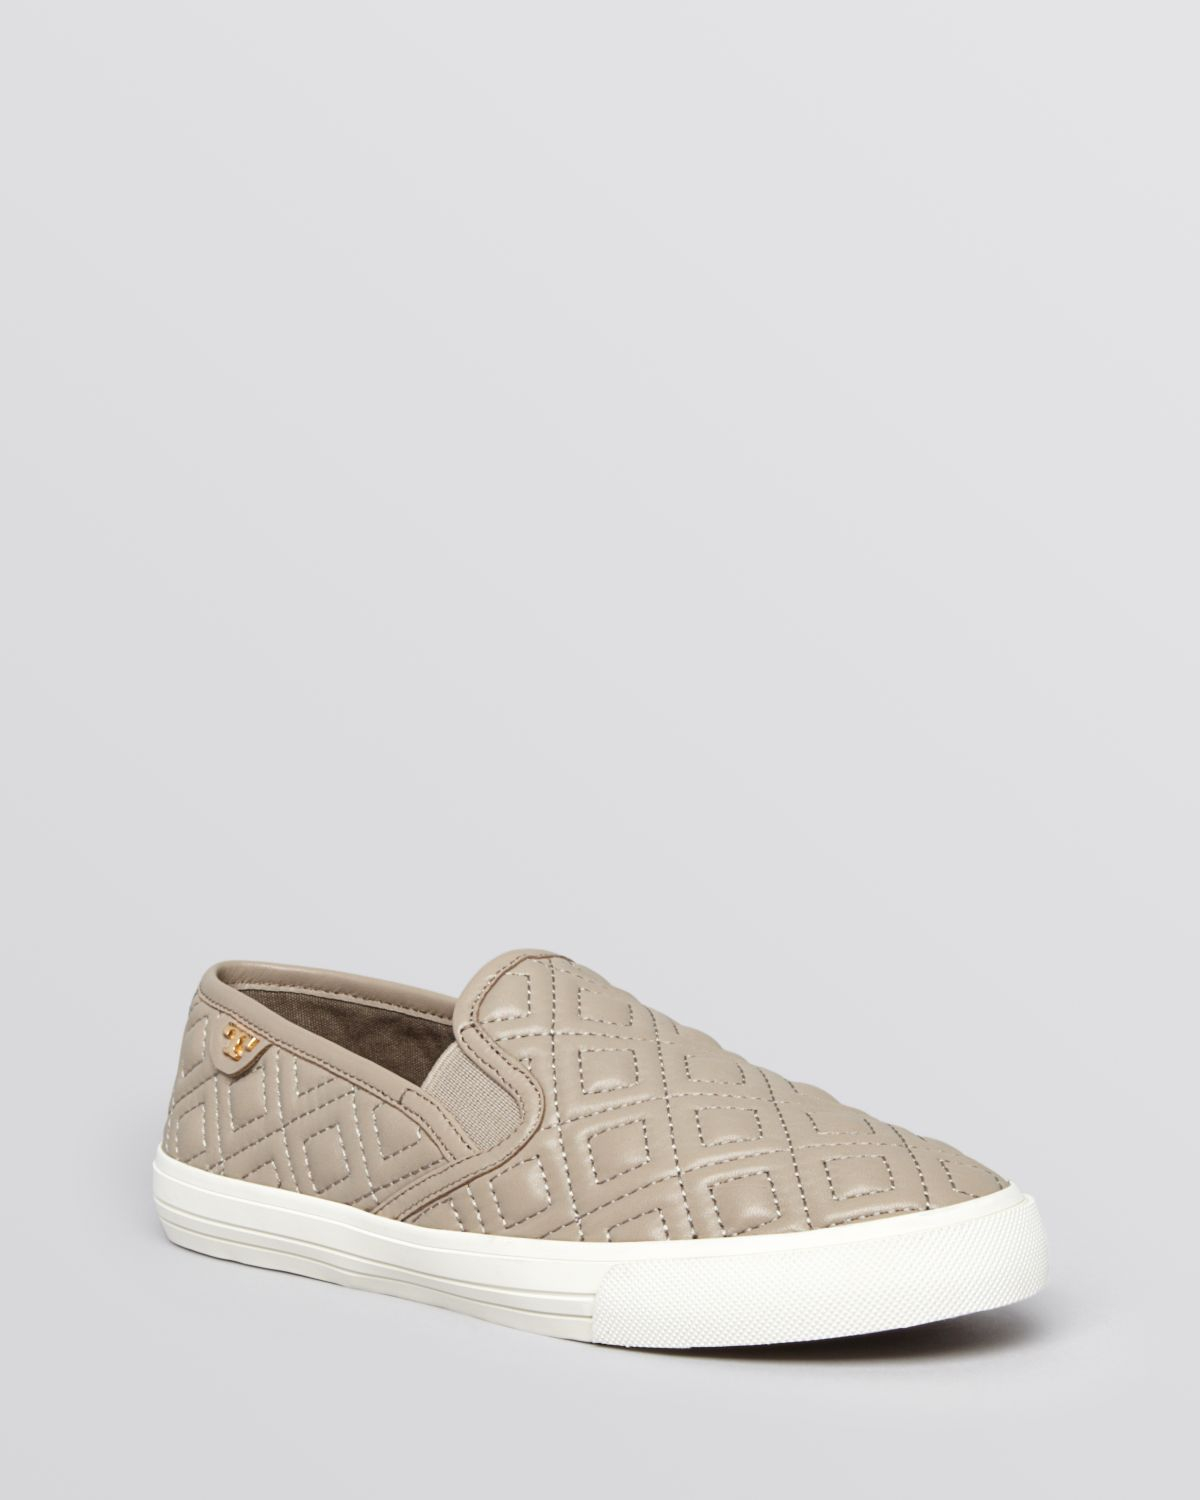 2d732cd2bf39 Lyst - Tory Burch Flat Slip On Sneakers - Jesse Quilted in Gray